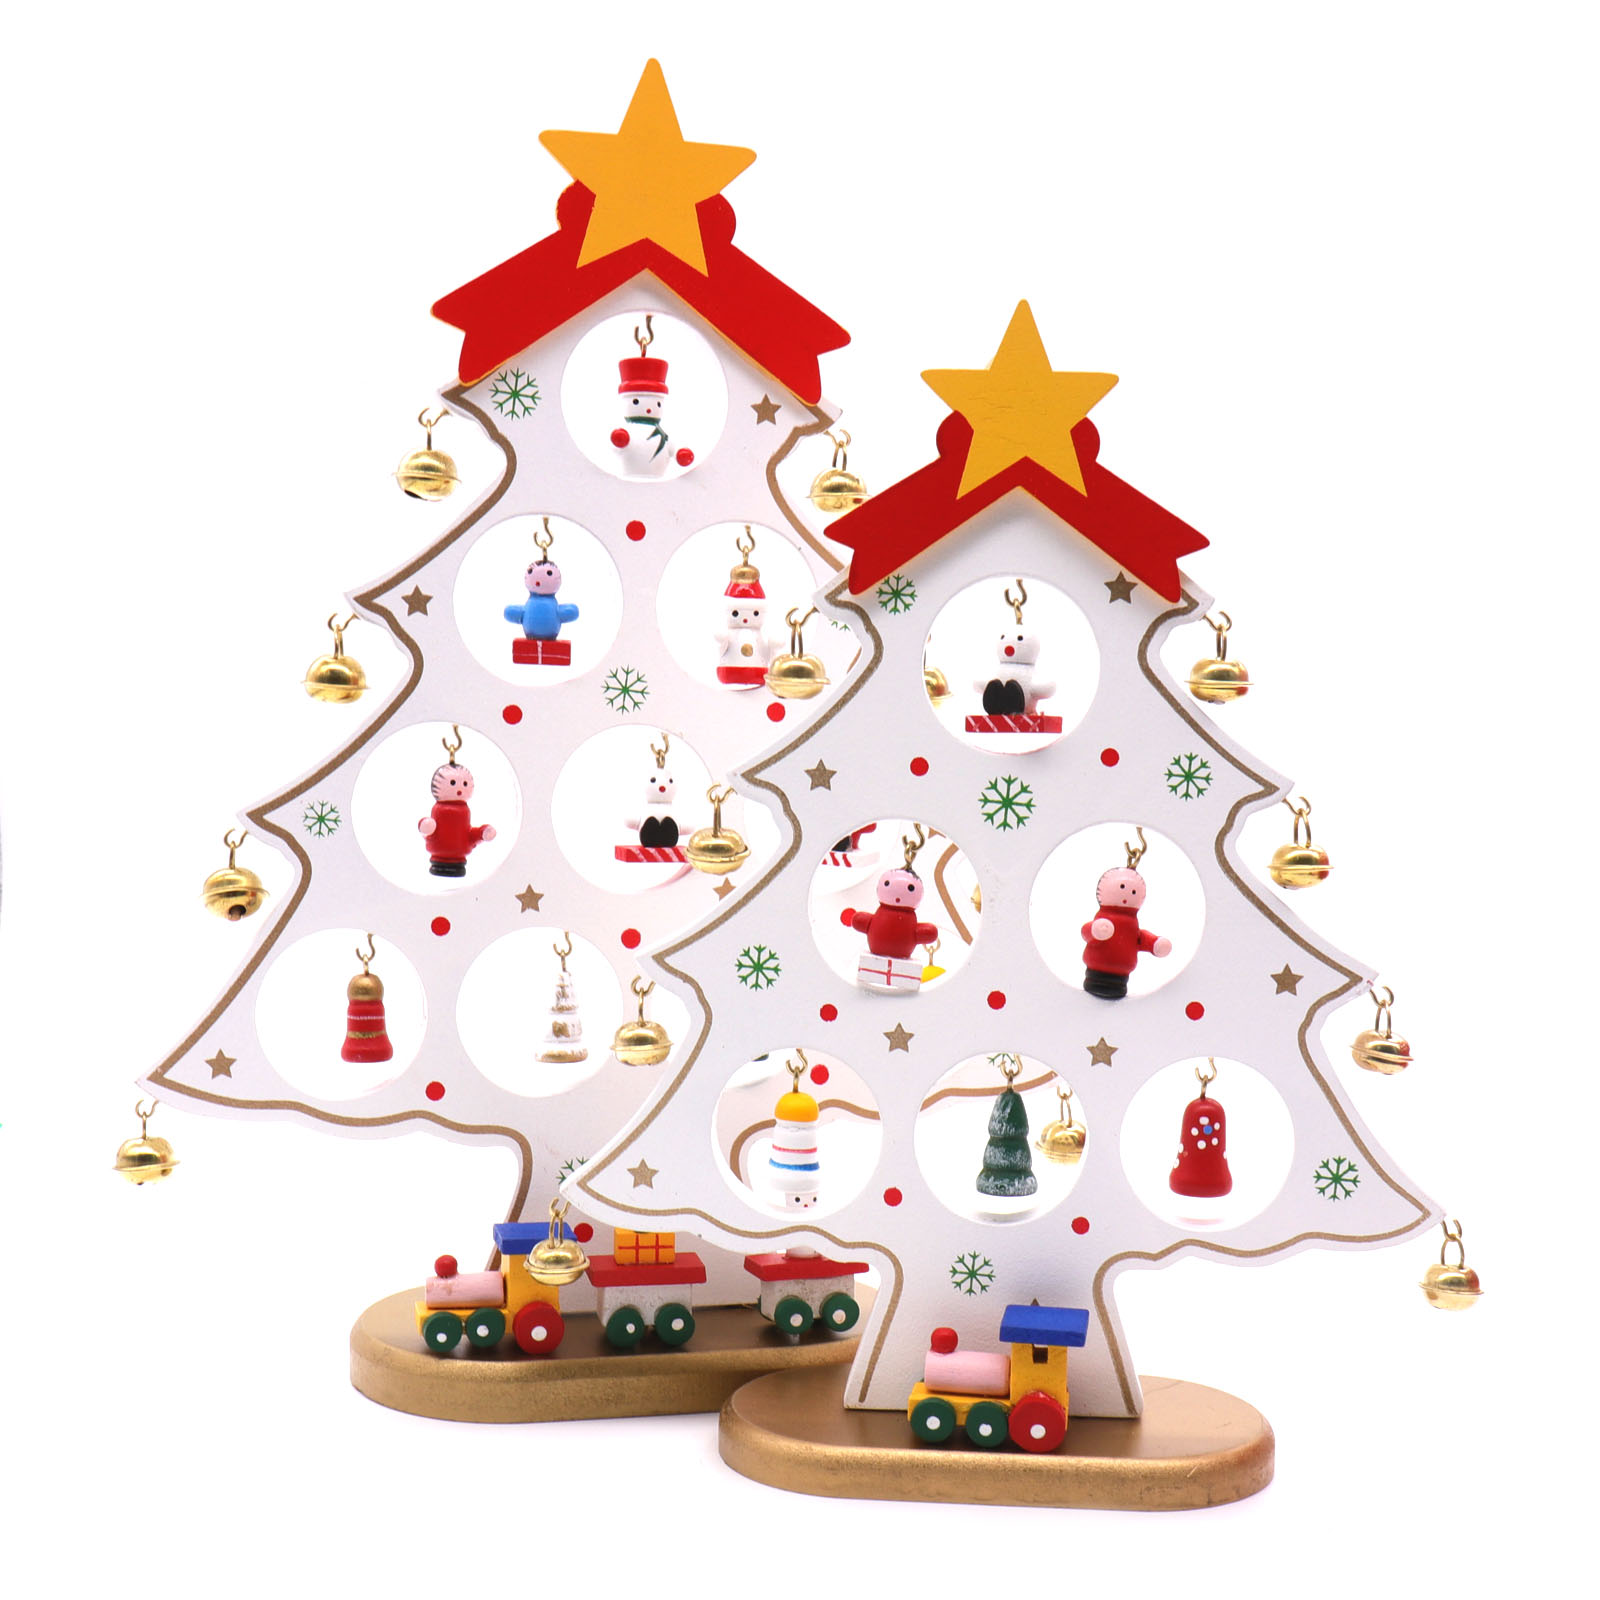 3Sizes Wooden Artificial Christmas Tree Decorations Ornaments Wood Mini Christmas Trees Gift Ornament Table Decoration Christmas Decorations Wholesale